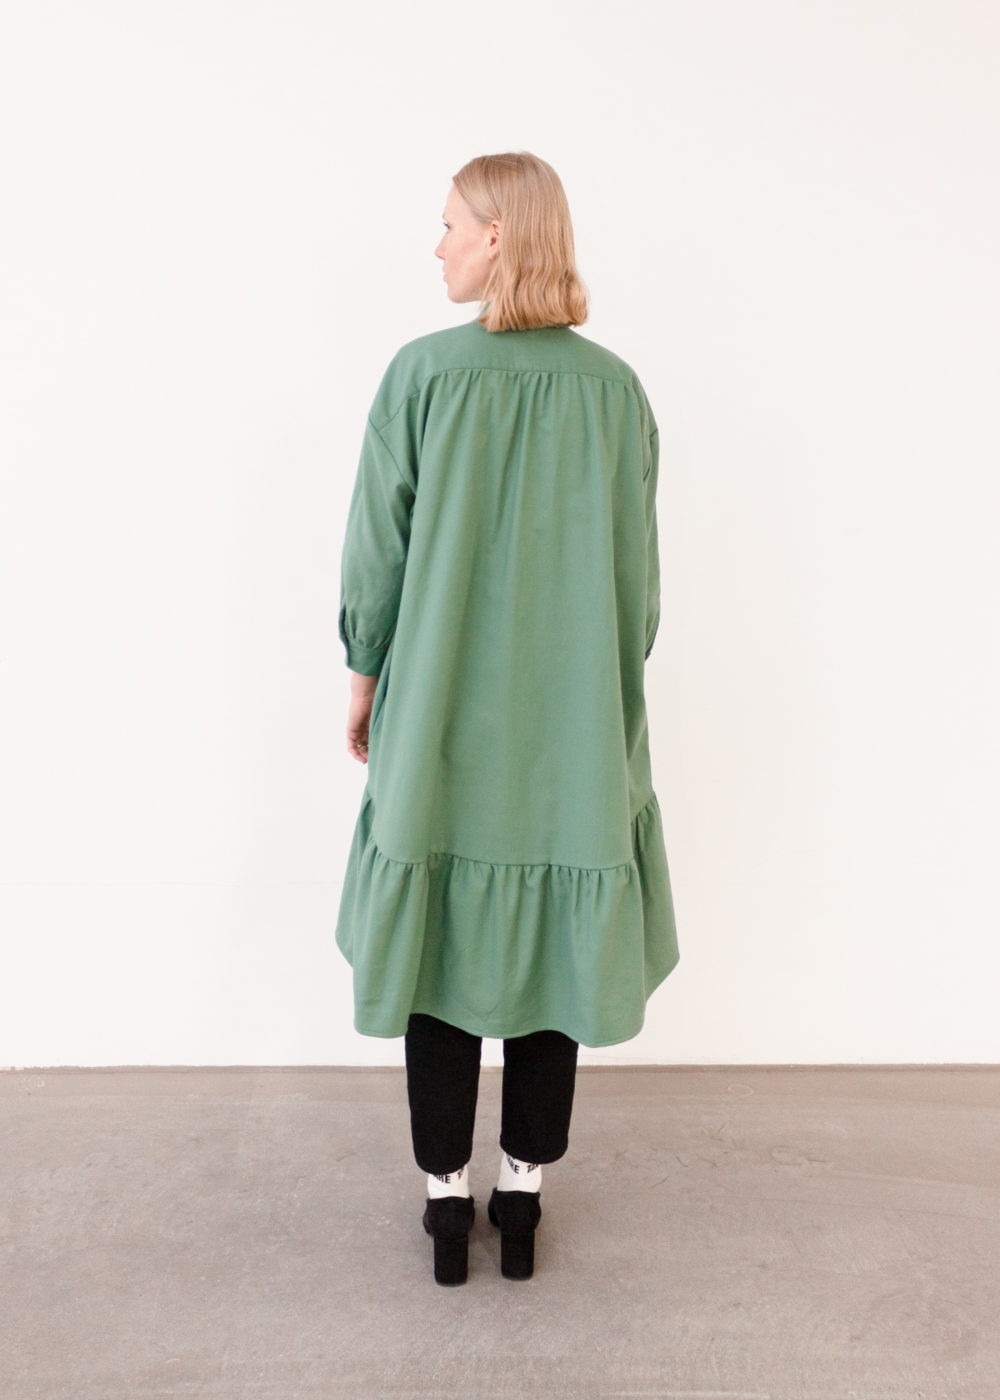 Vimma Dress SOINTU Be Kind Take Care keltainen Onesize - (keltainen), Be Kind Take Care, Dress, Onesize, SOINTU